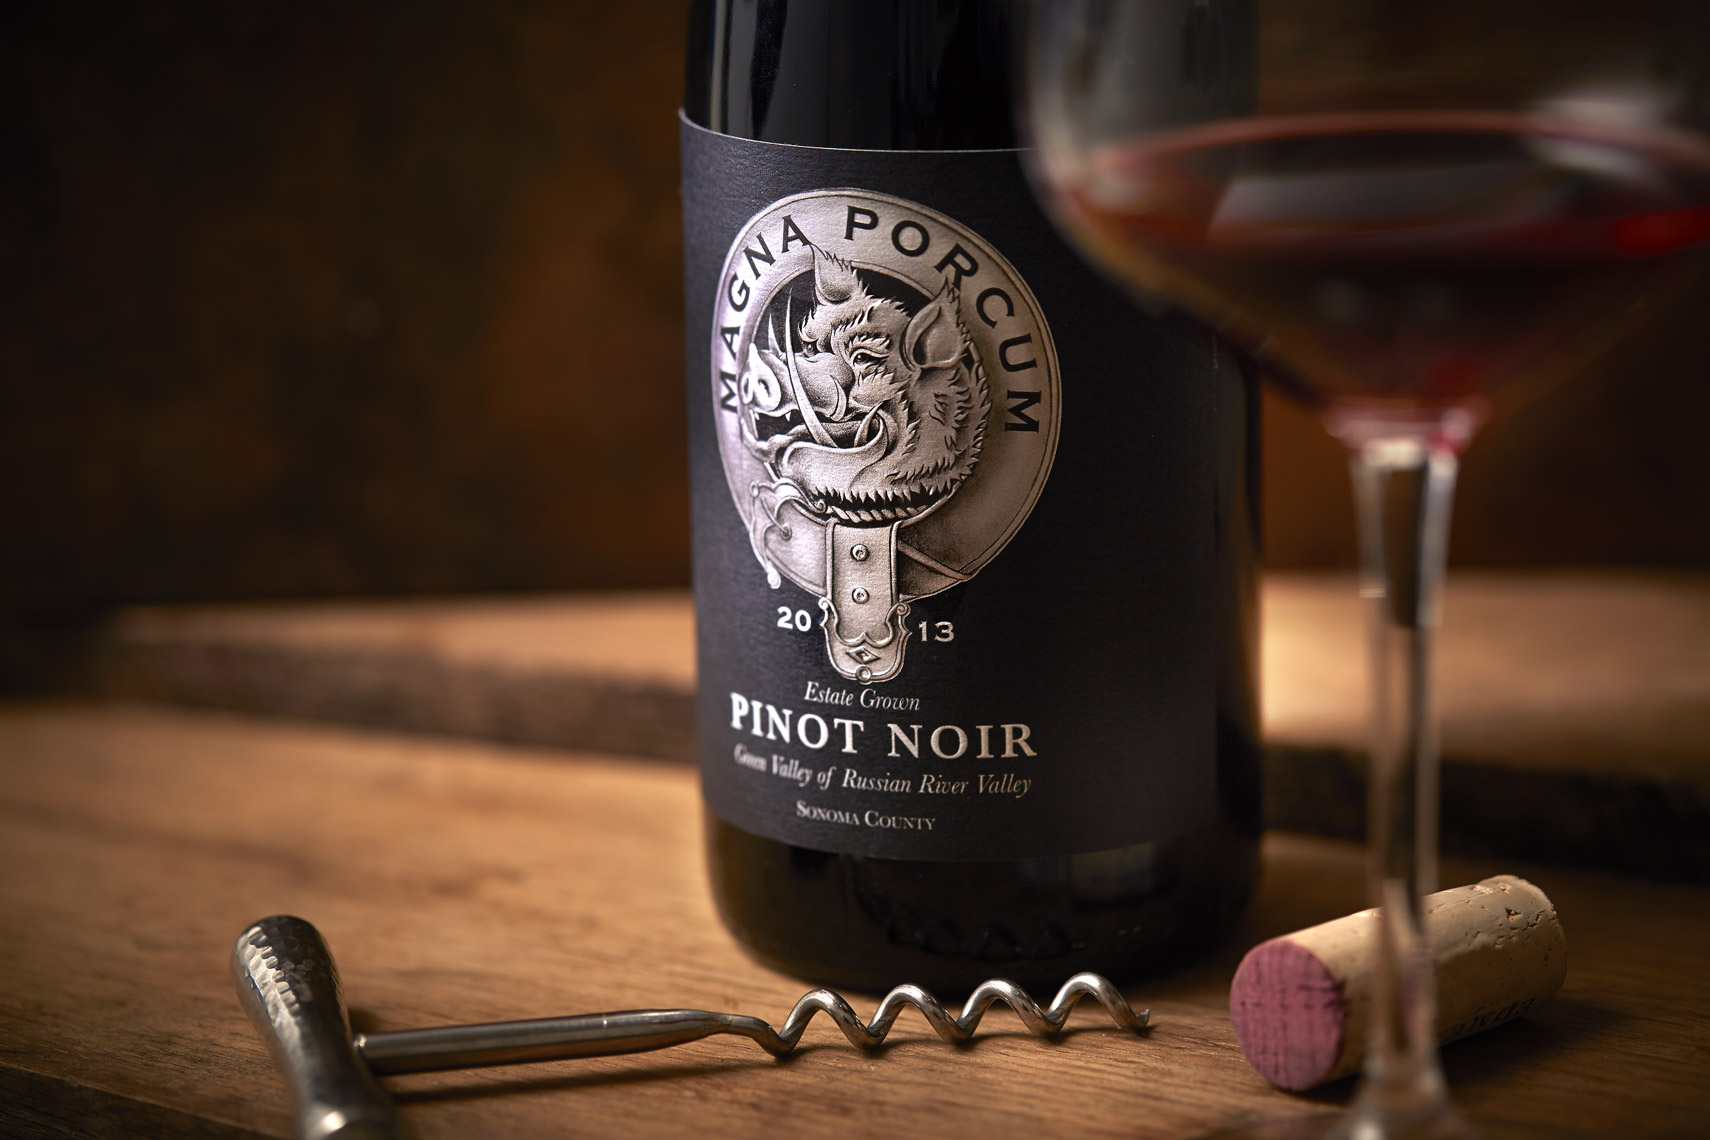 AlanCampbellPhotography, Camlow Cellars Big Pig Estate Pinot Noir